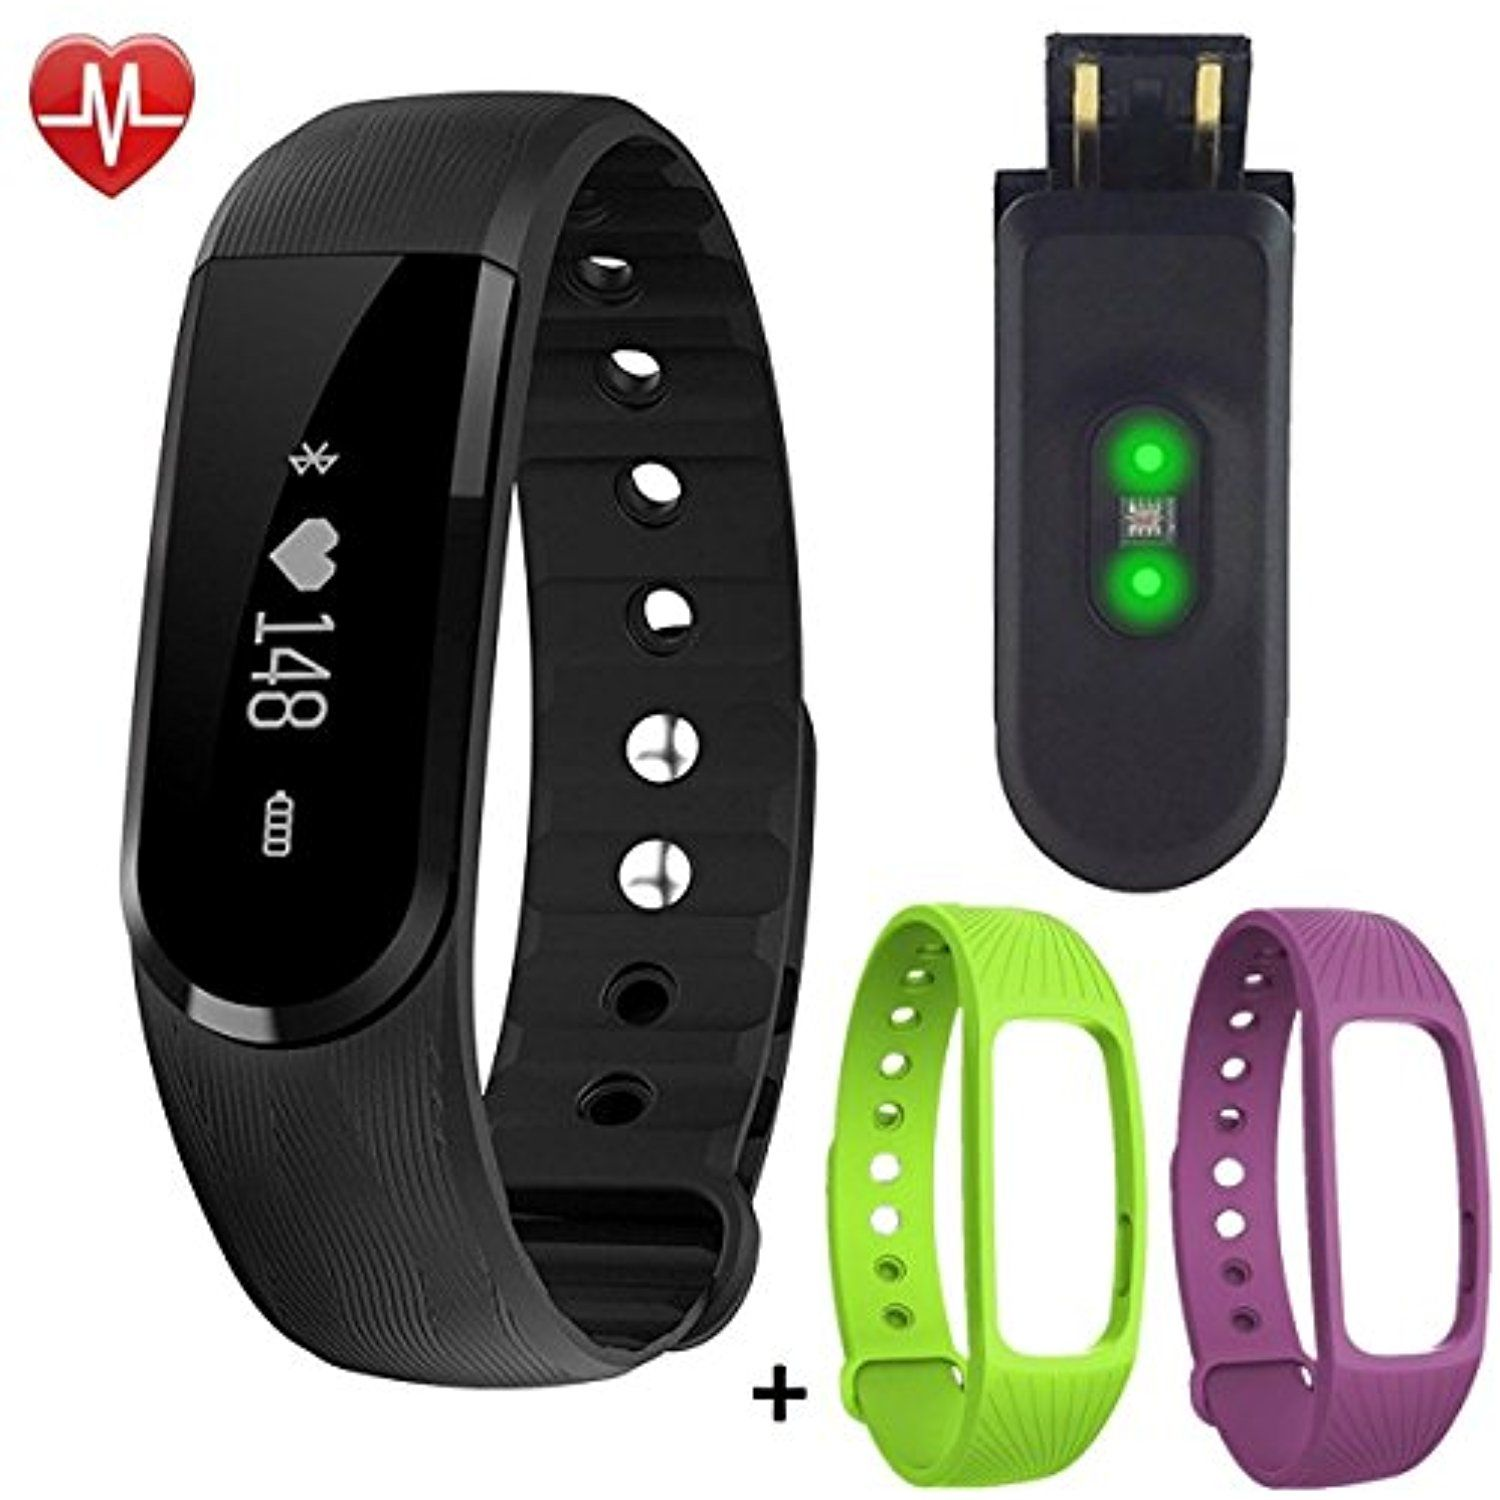 monitor android sports iphone calorie smart with wristband watch bracelet activity itm fitness pedometer watches counter tracker sleep compatible delvfire